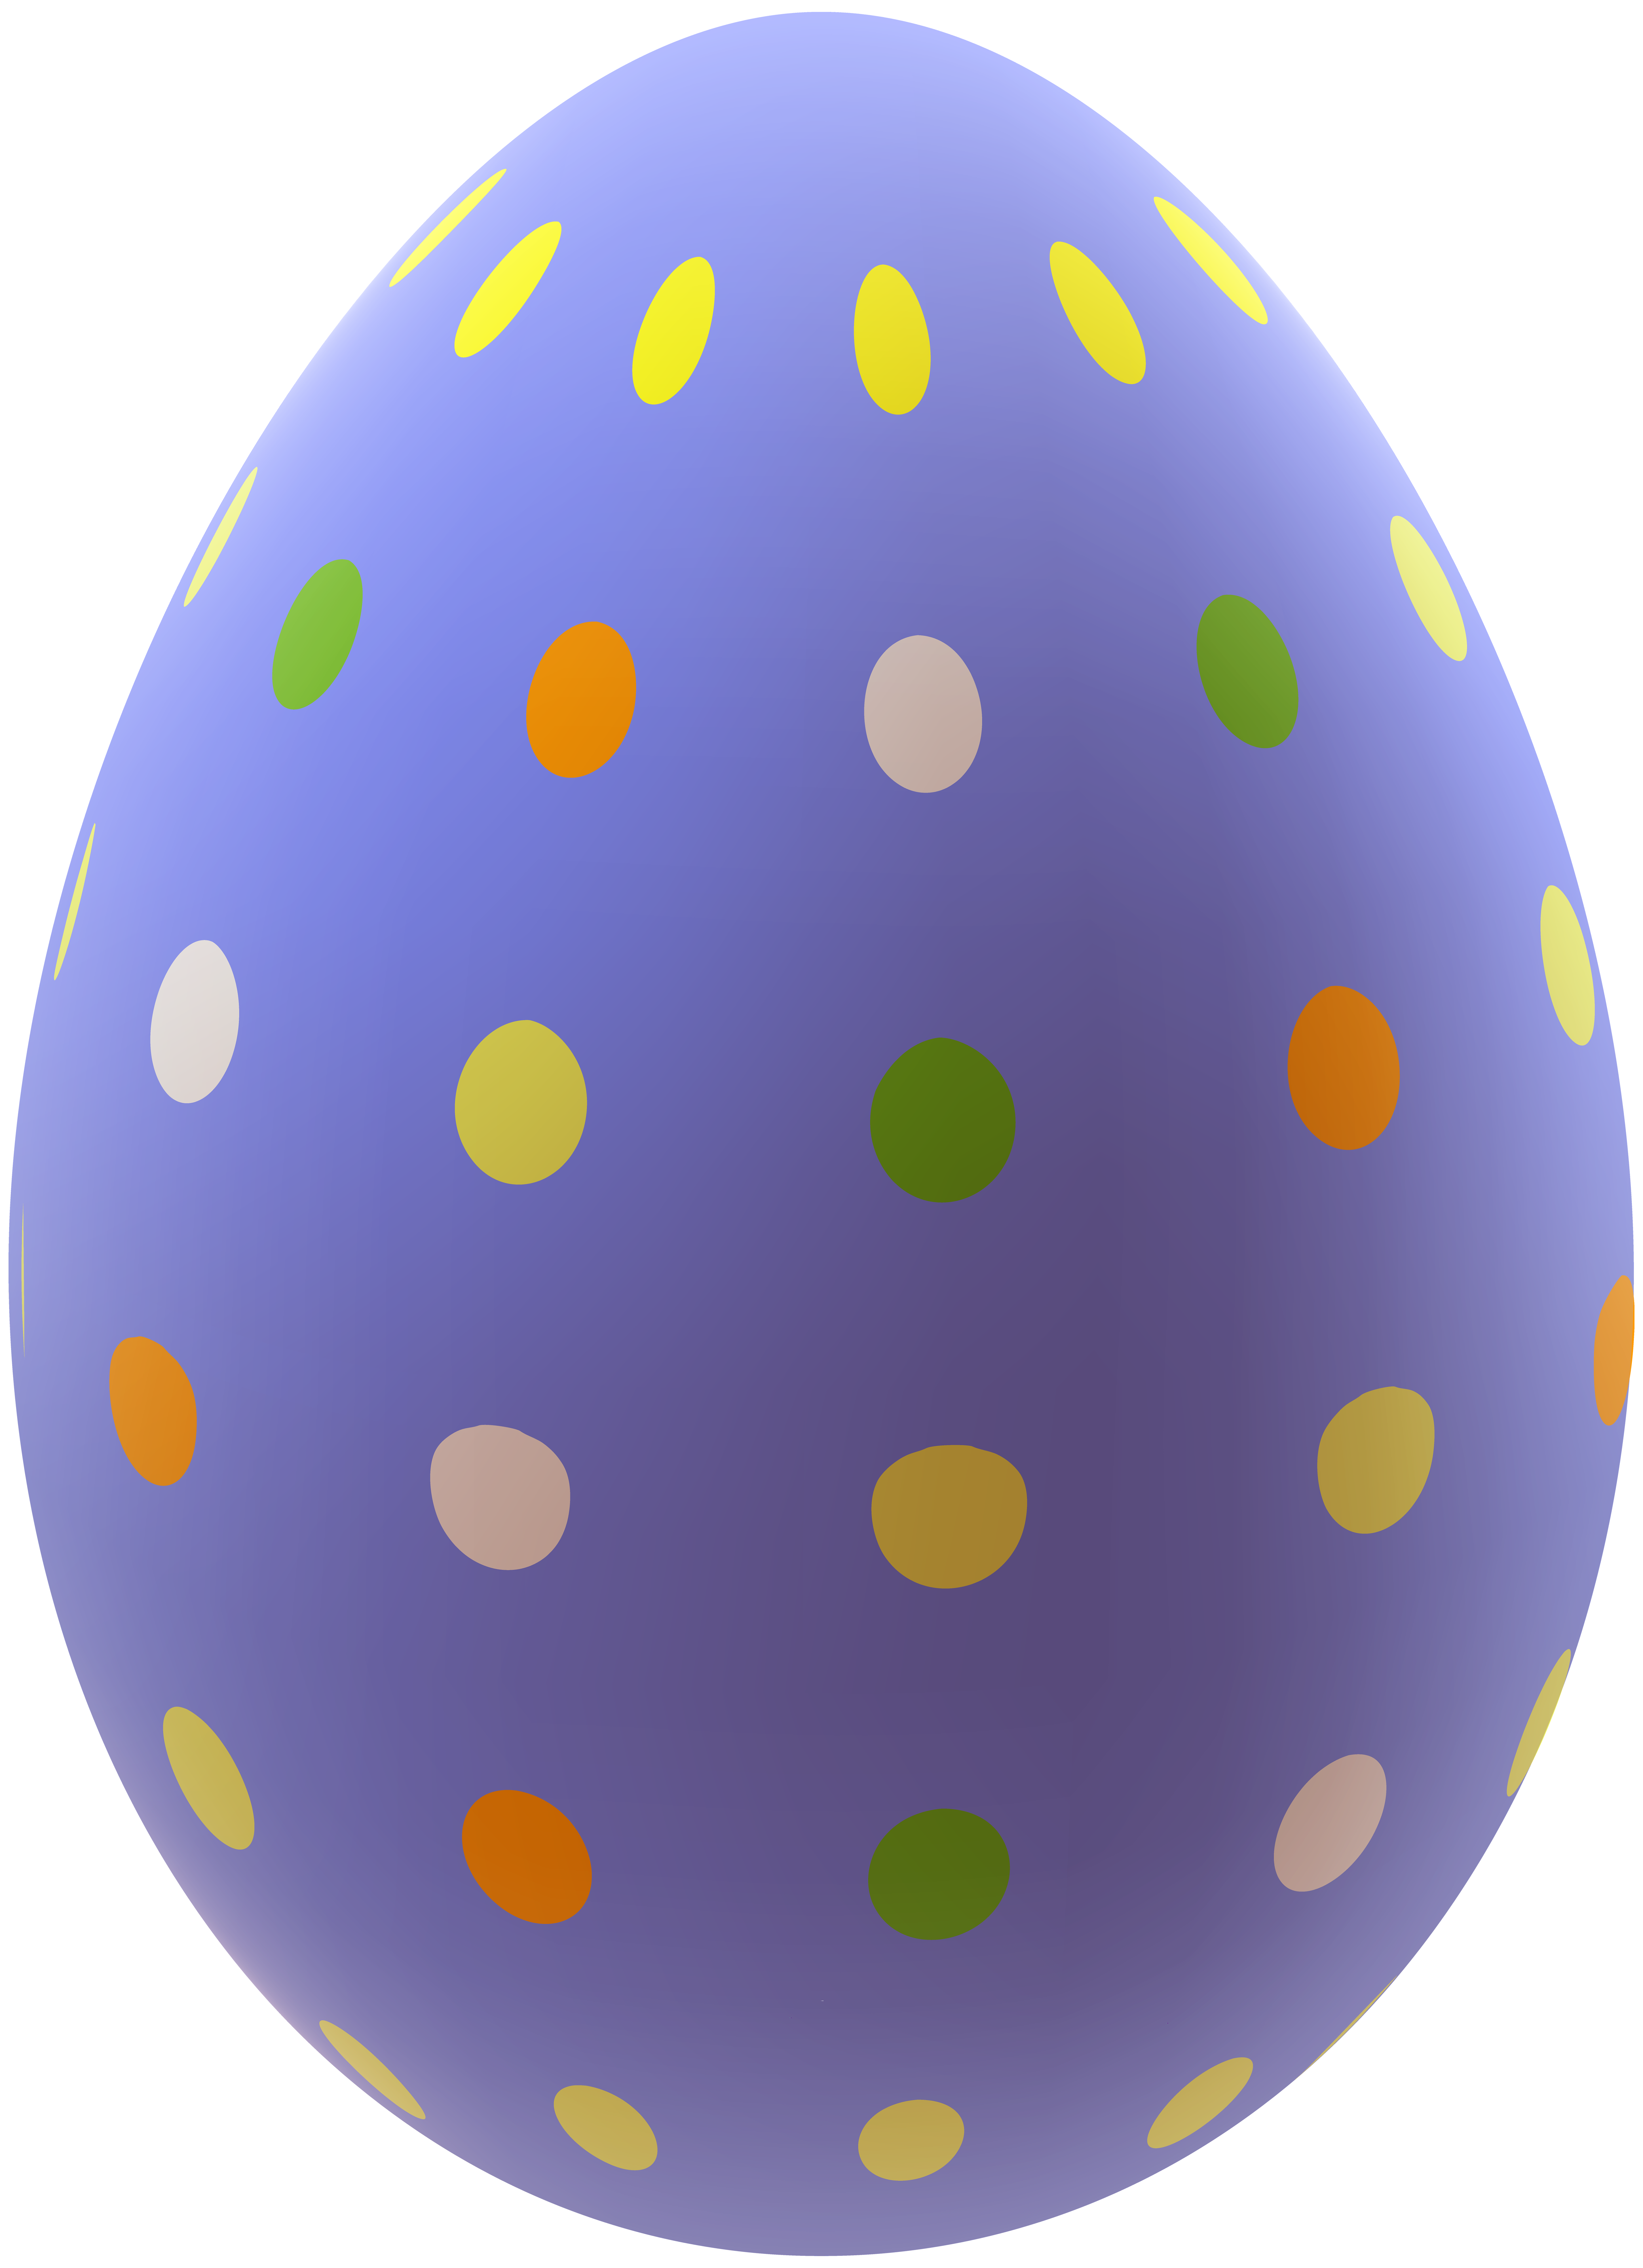 Easter eggs clip art png. Egg image gallery yopriceville